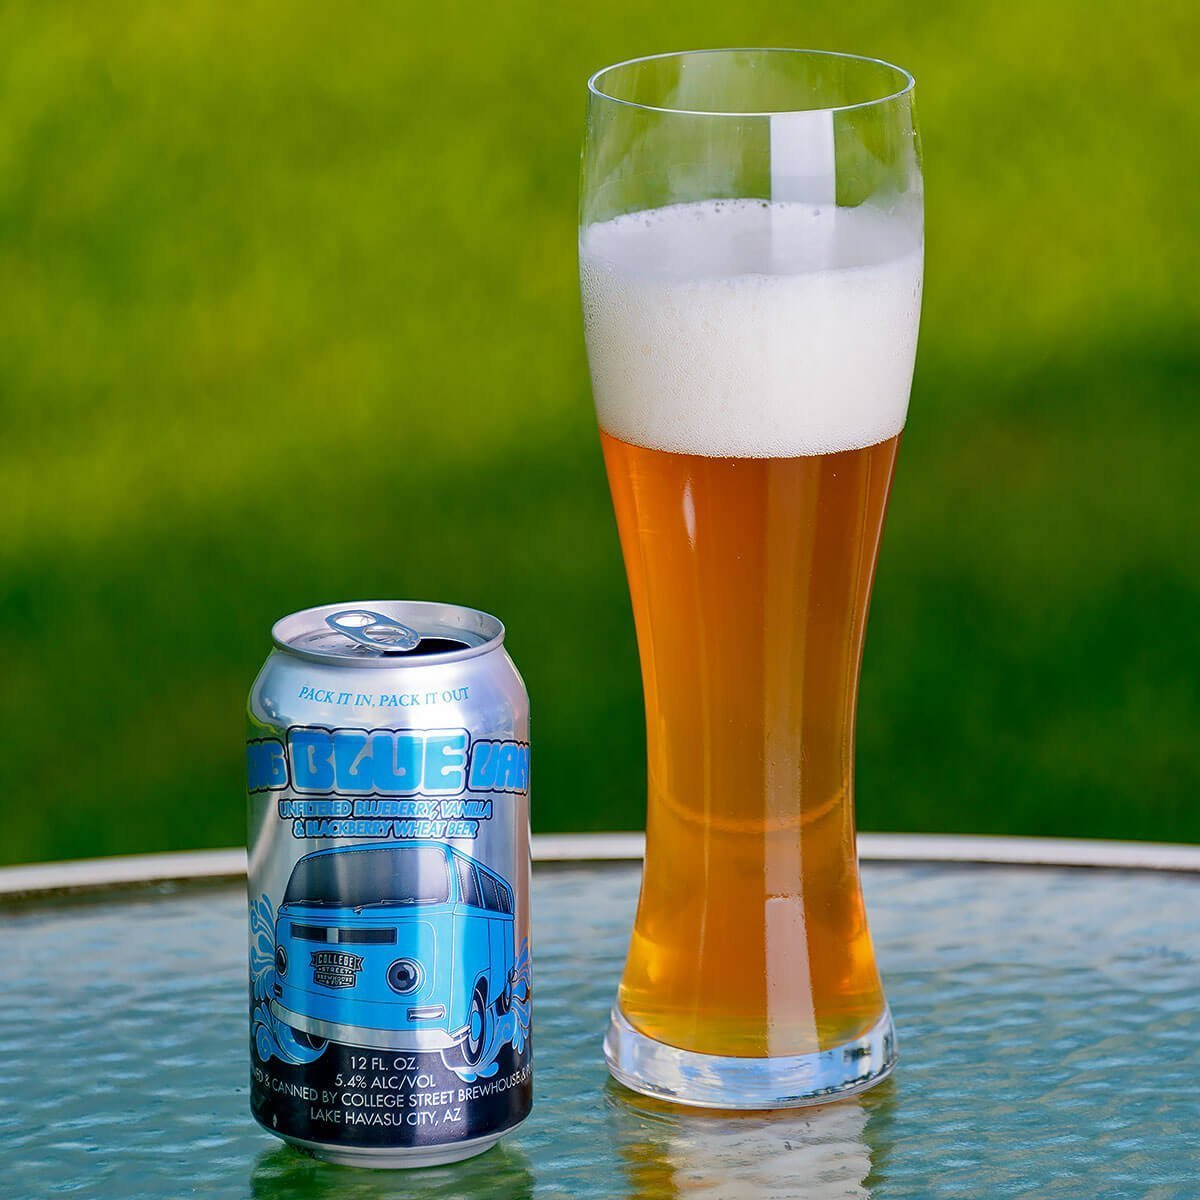 Big Blue Van is an American Wheat Ale brewed by College Street Brewhouse & Pub that blends mildly tart blueberries and wheat bread with sweet vanilla.